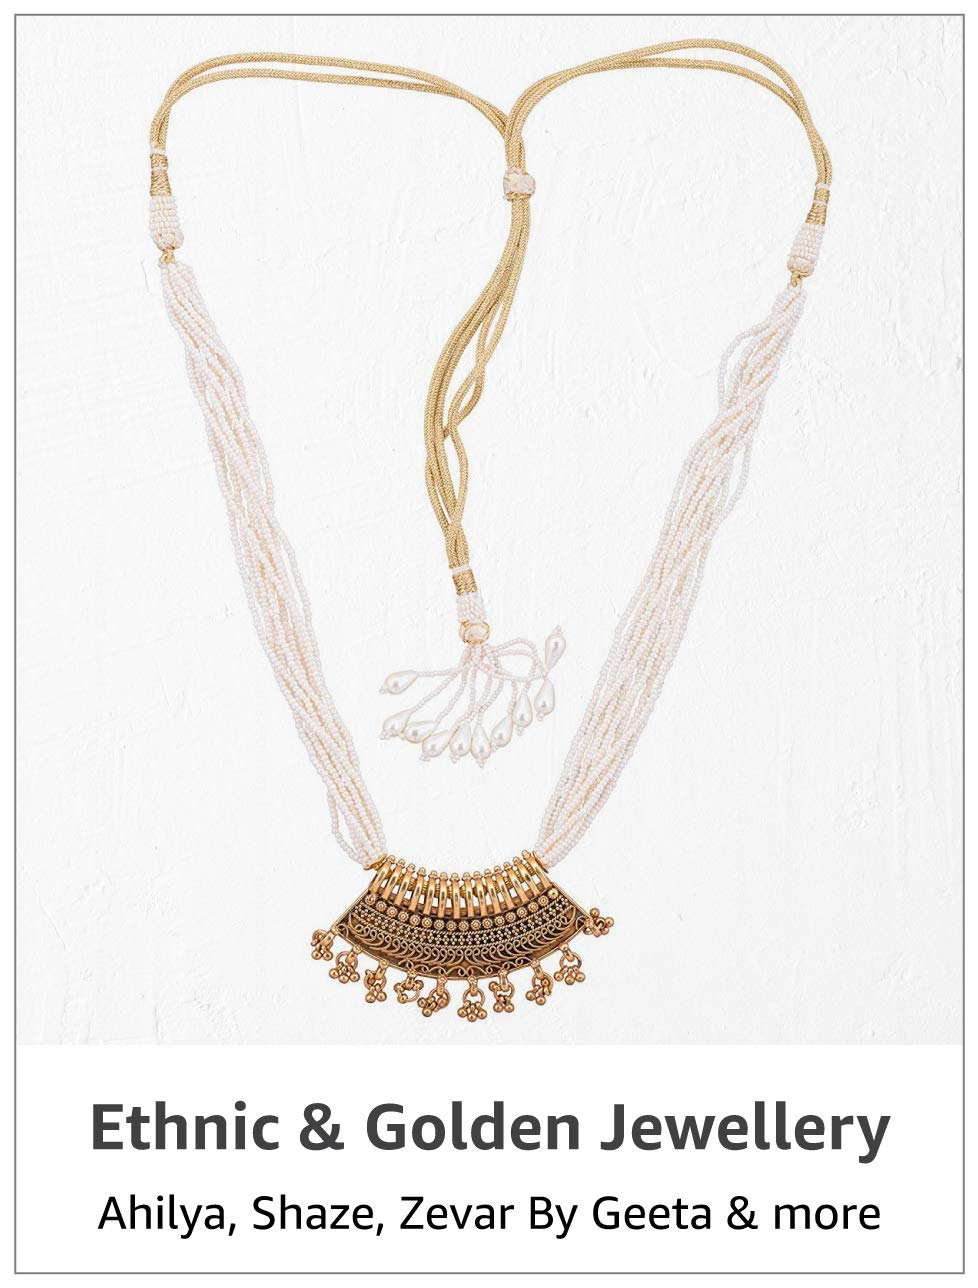 Ethnic & Golden Jewellery